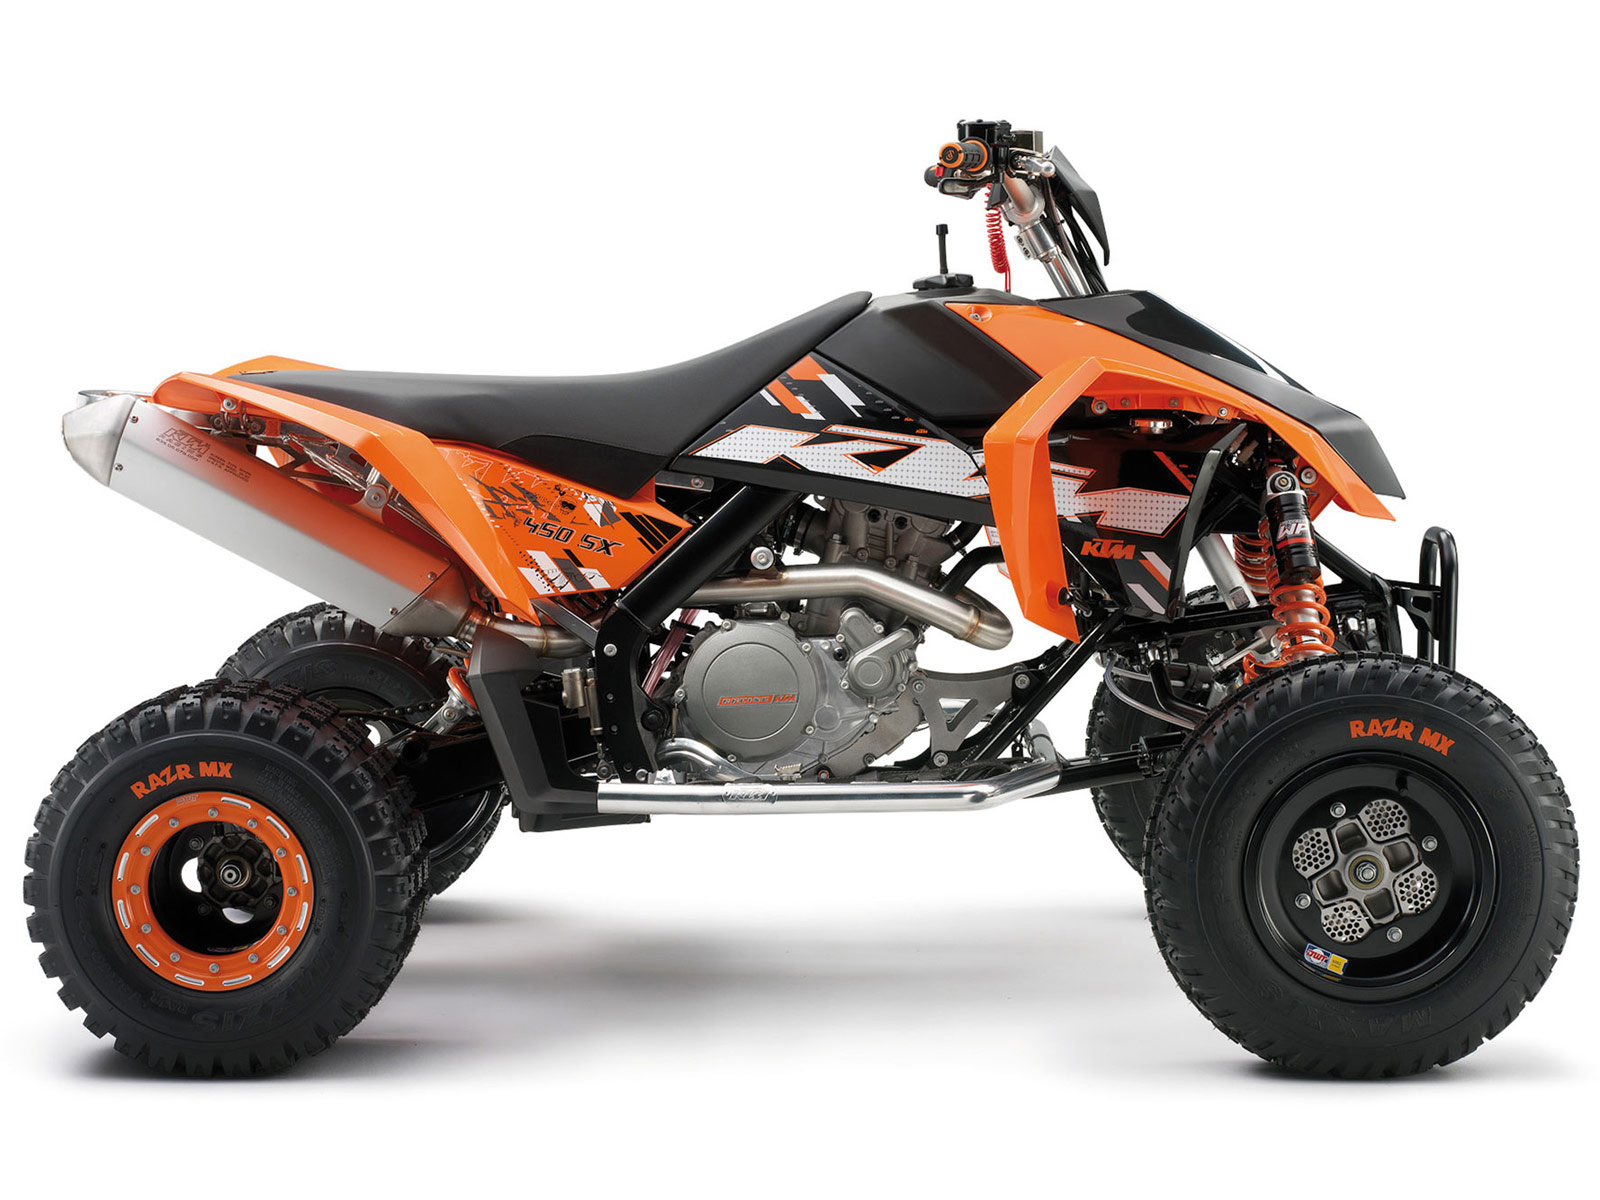 2012 ktm 450sx auto accident lawyers information. Black Bedroom Furniture Sets. Home Design Ideas